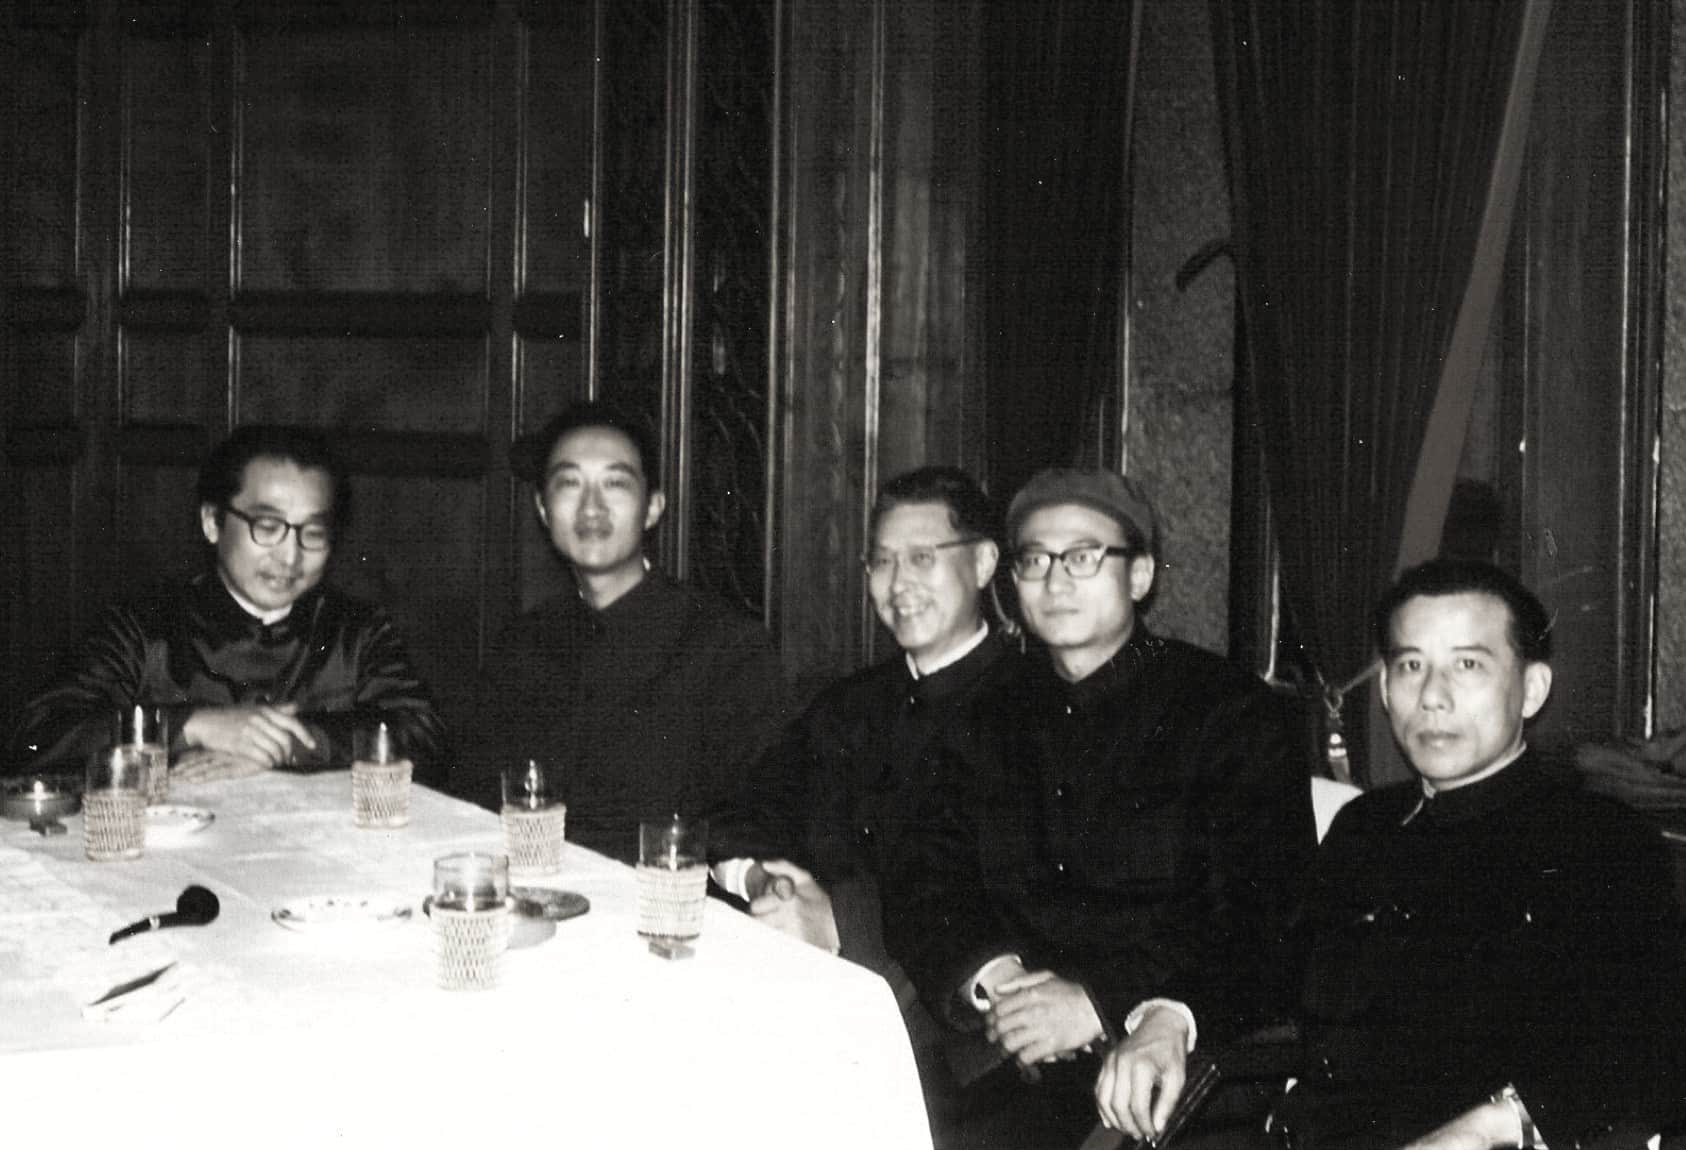 In 1972, Prof. Chou Wen-chung visited China for the first time since his departure in 1946